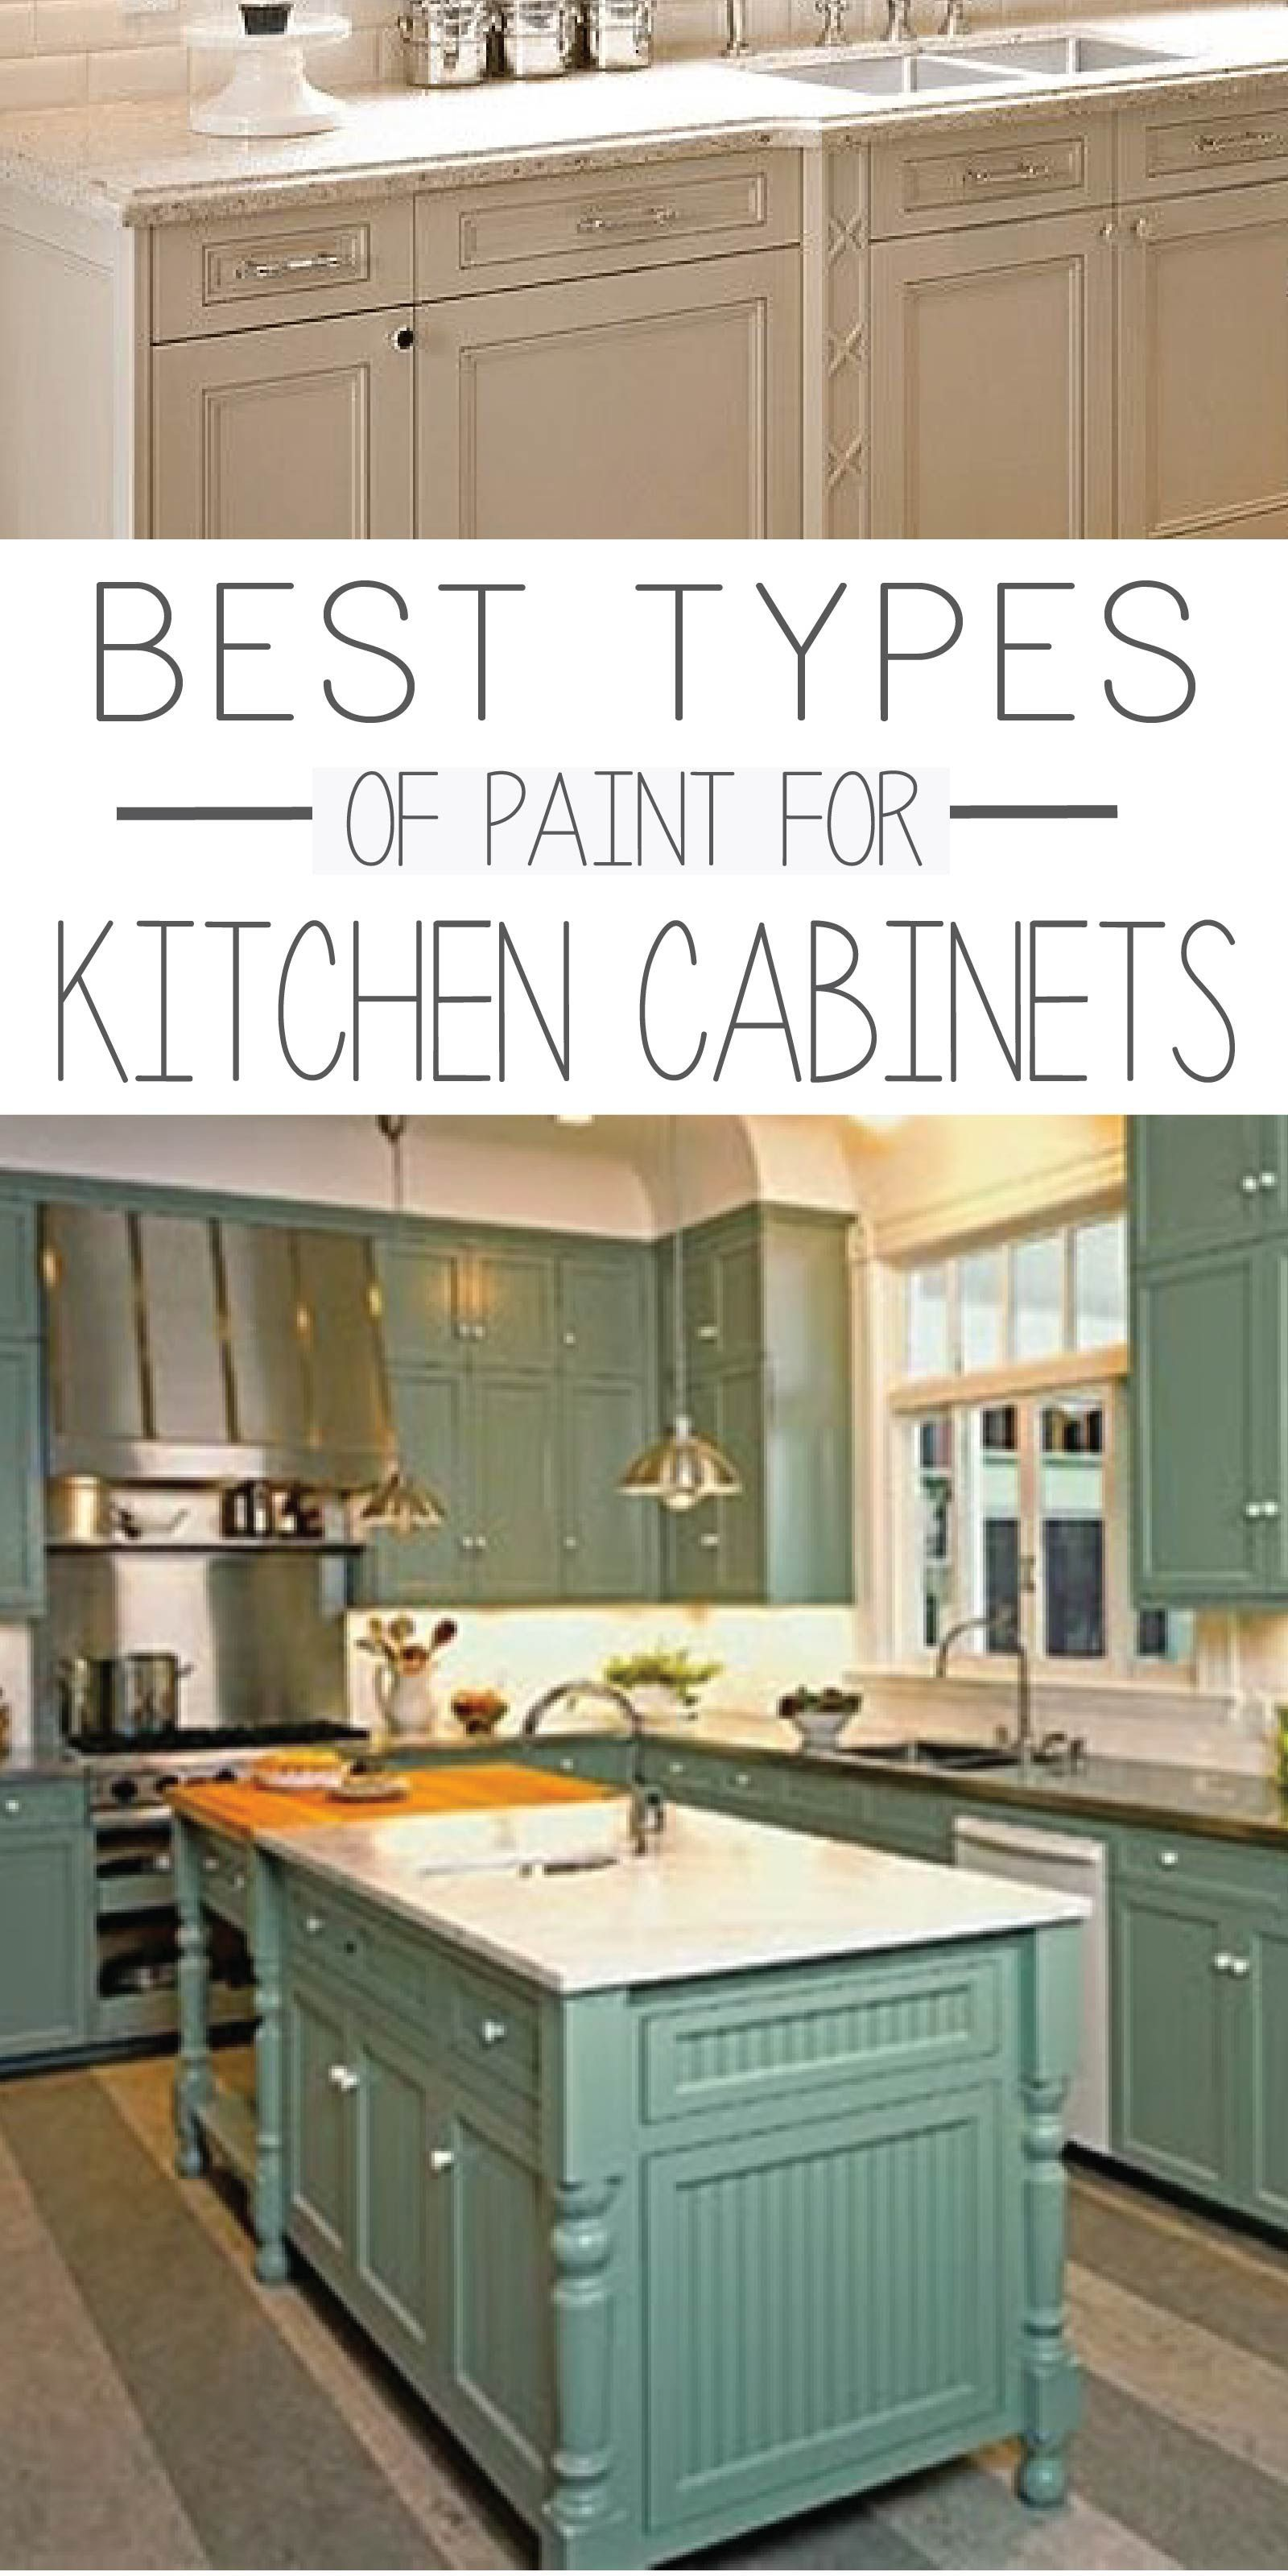 The 5 Best Types Of Paint For Kitchen Cabinets Kitchen